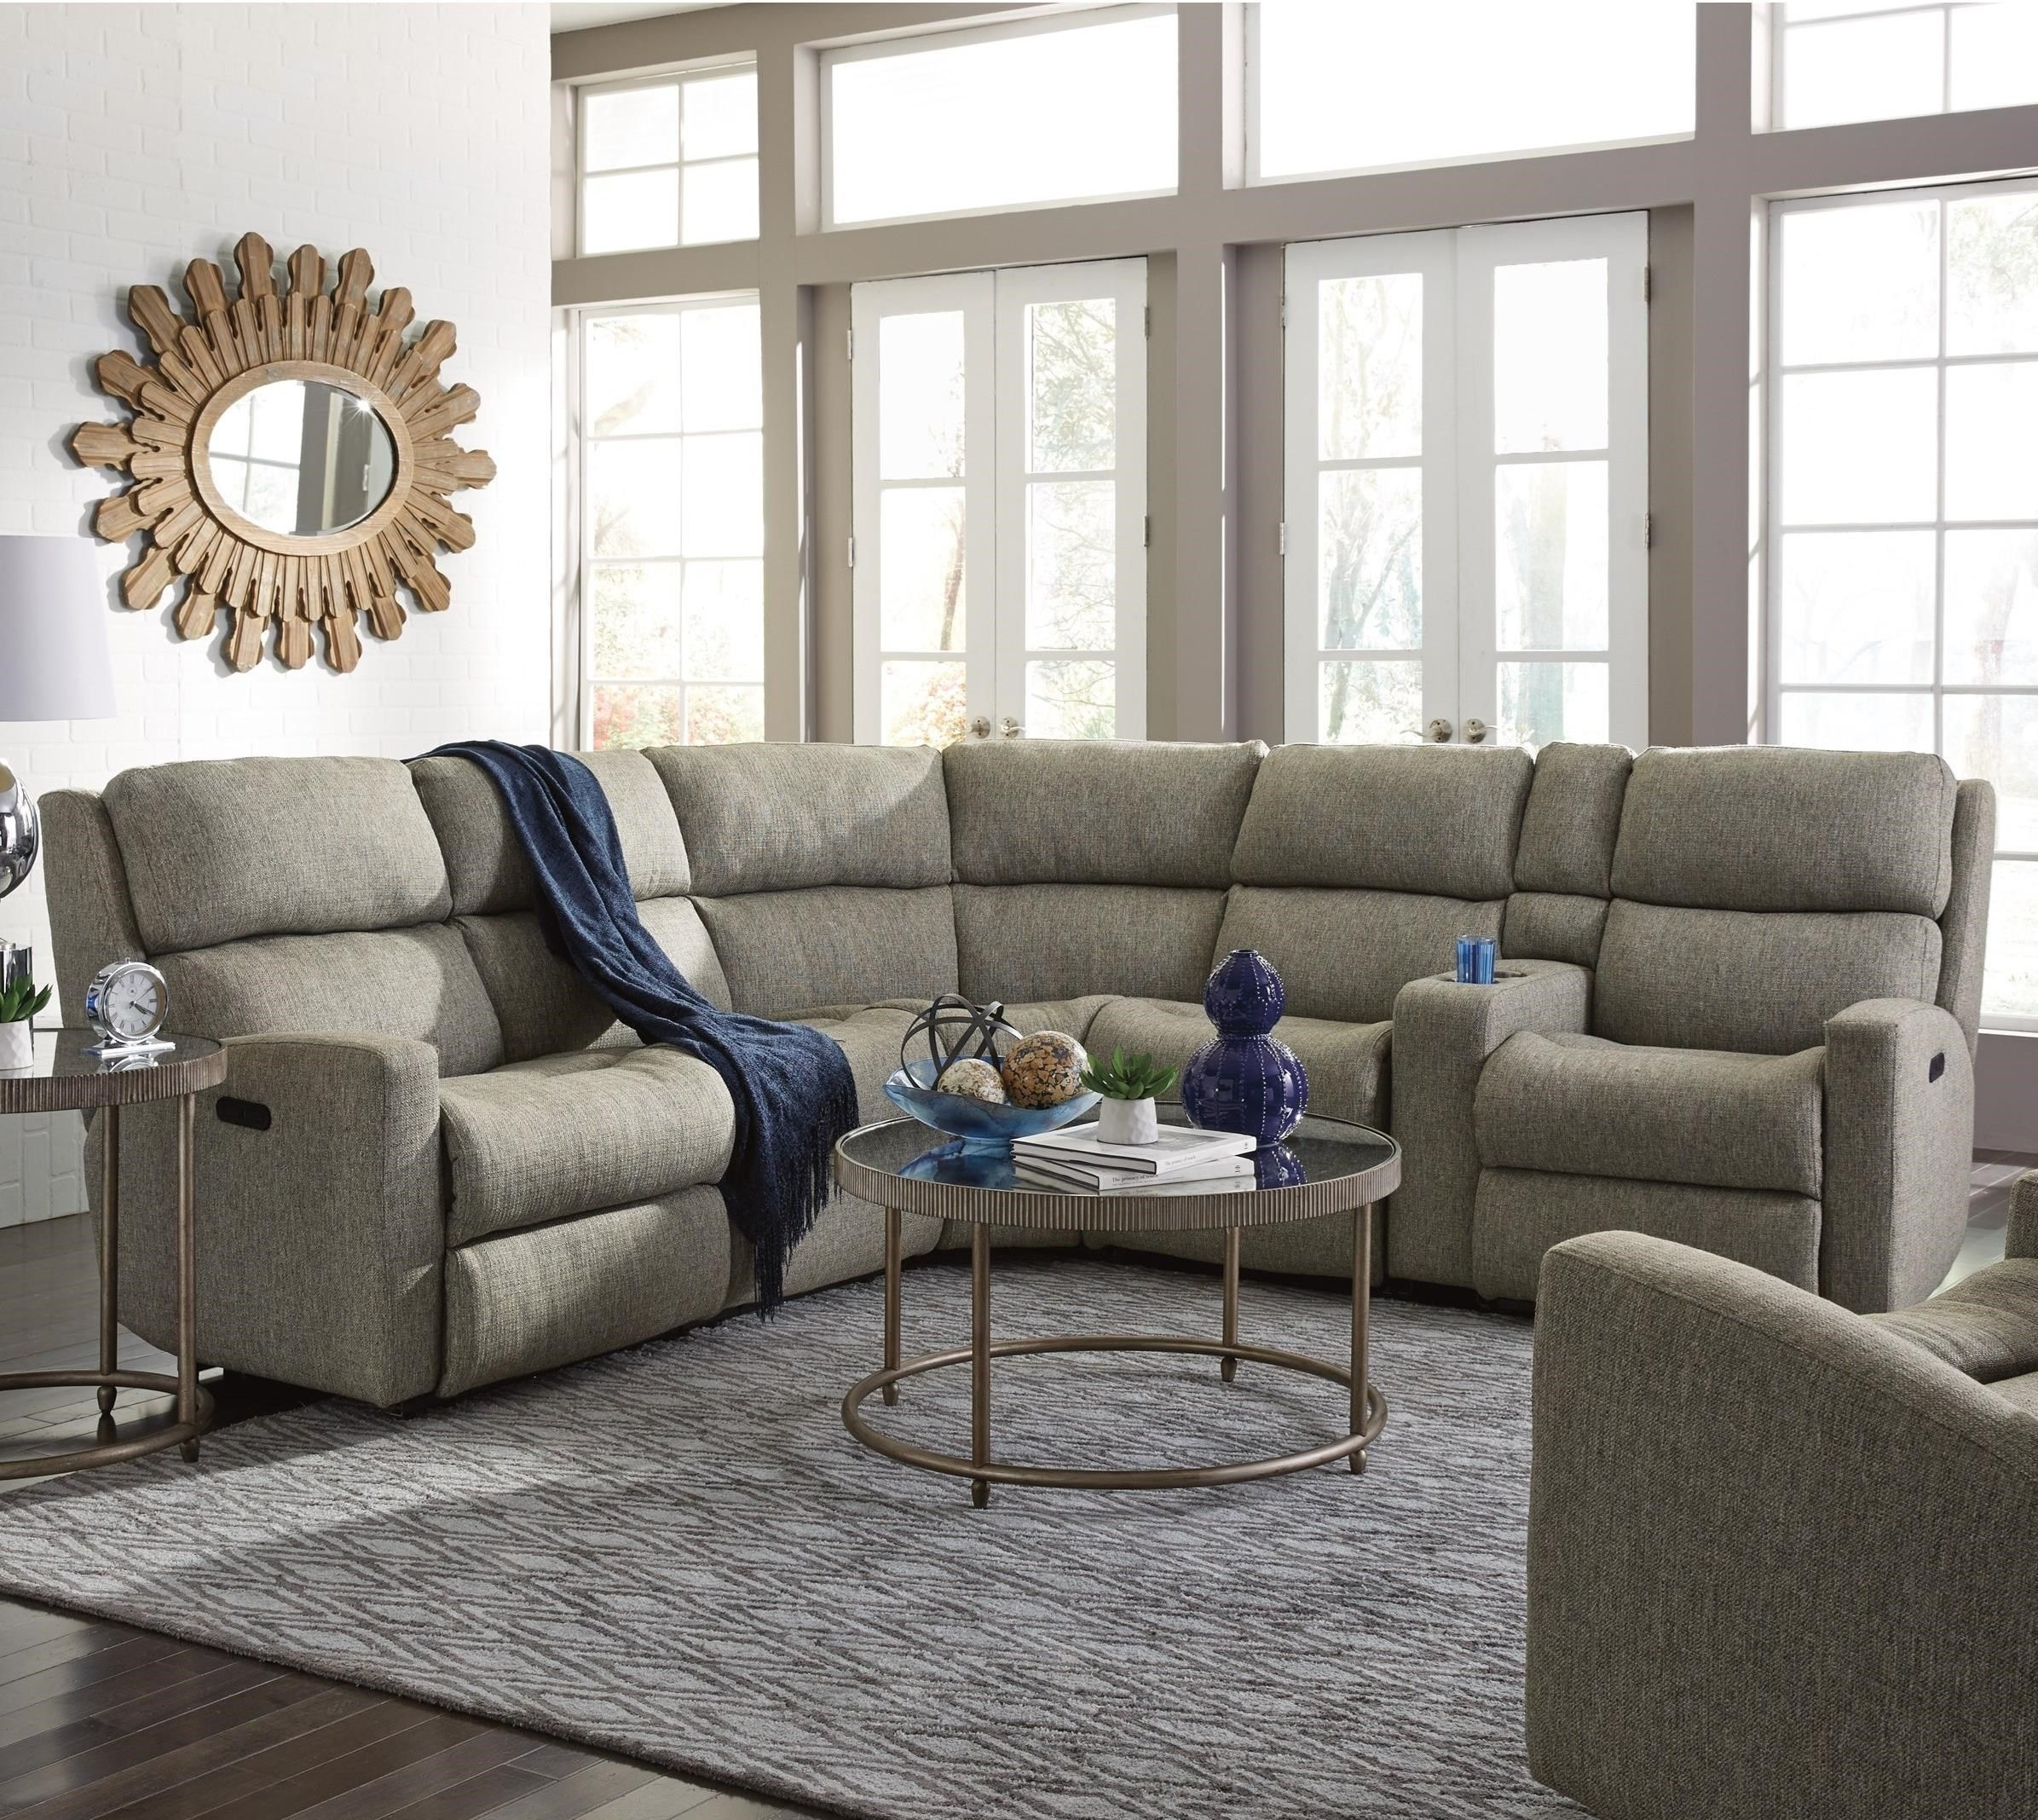 Catalina 6 Pc Reclining Sectional Sofaflexsteel   Fabulous Pertaining To Hawaii Sectional Sofas (View 8 of 10)